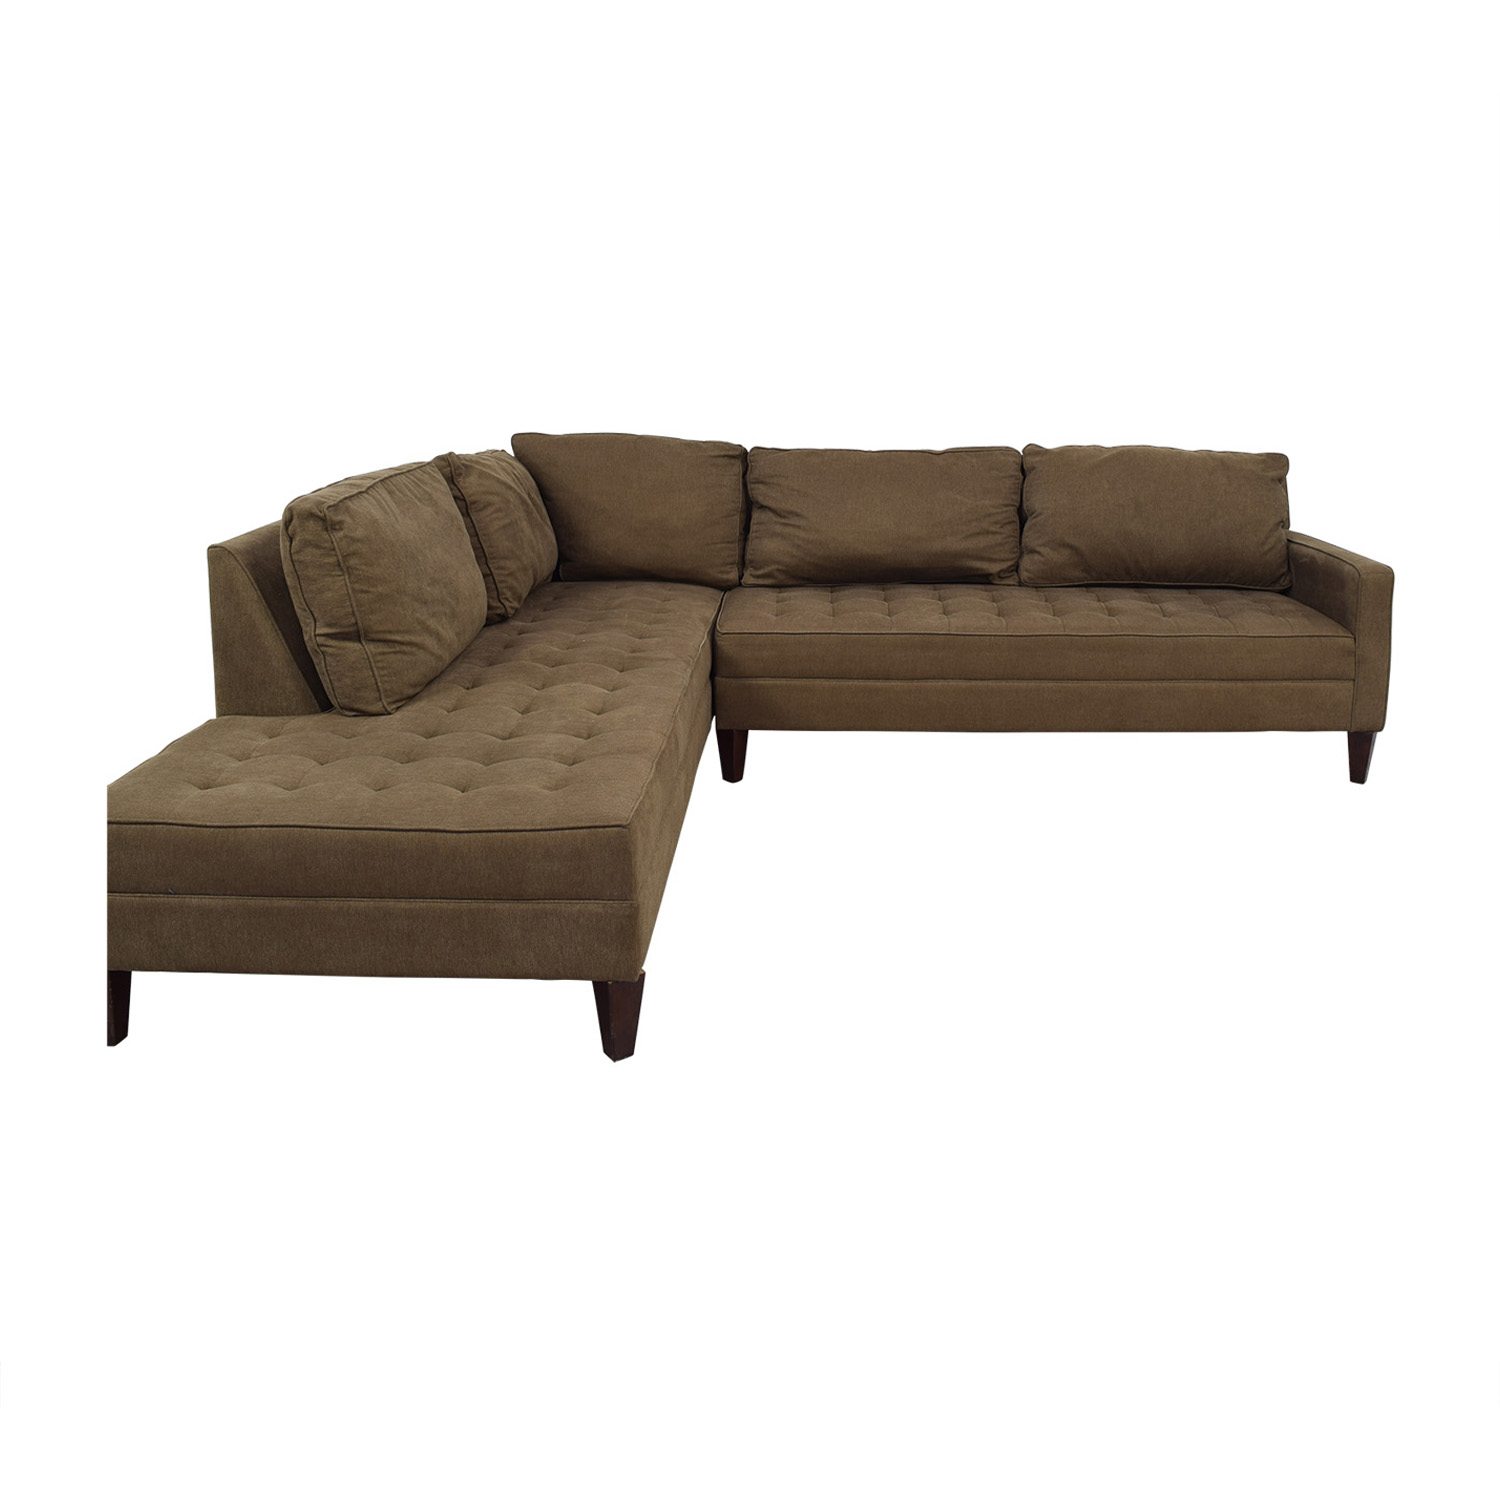 Z Gallerie Brown Tufted Chaise L Shaped Sectional